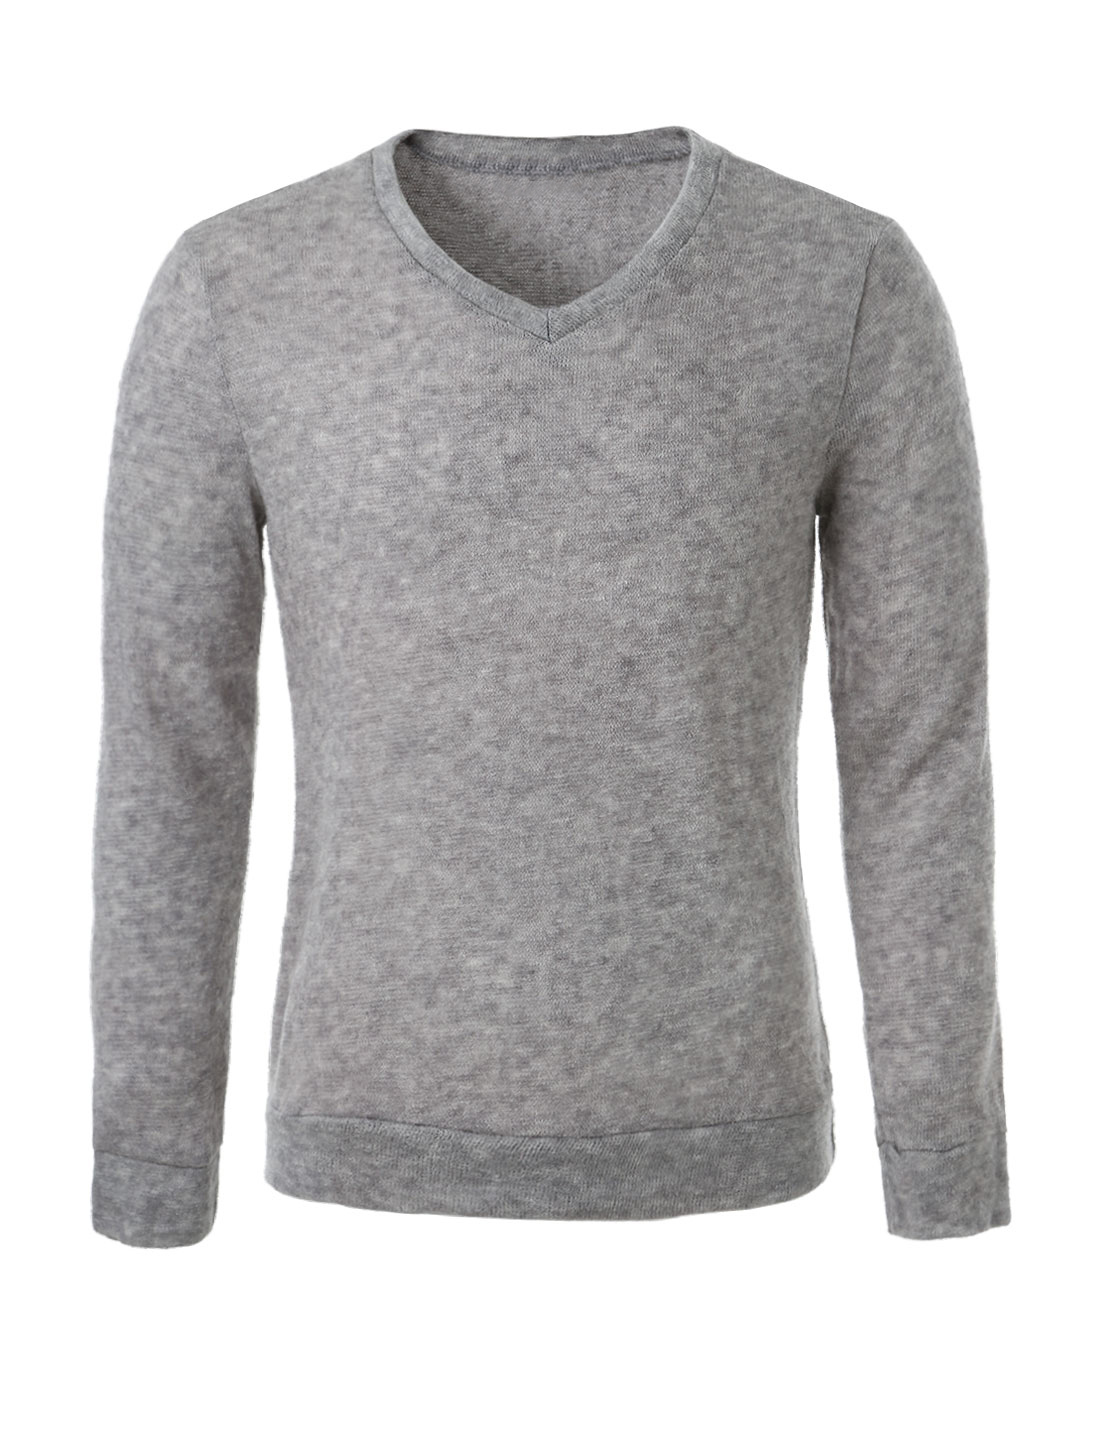 Mens Heather Gray Trendy Long Sleeve Stretchy Solid Color Autumn Sweater S